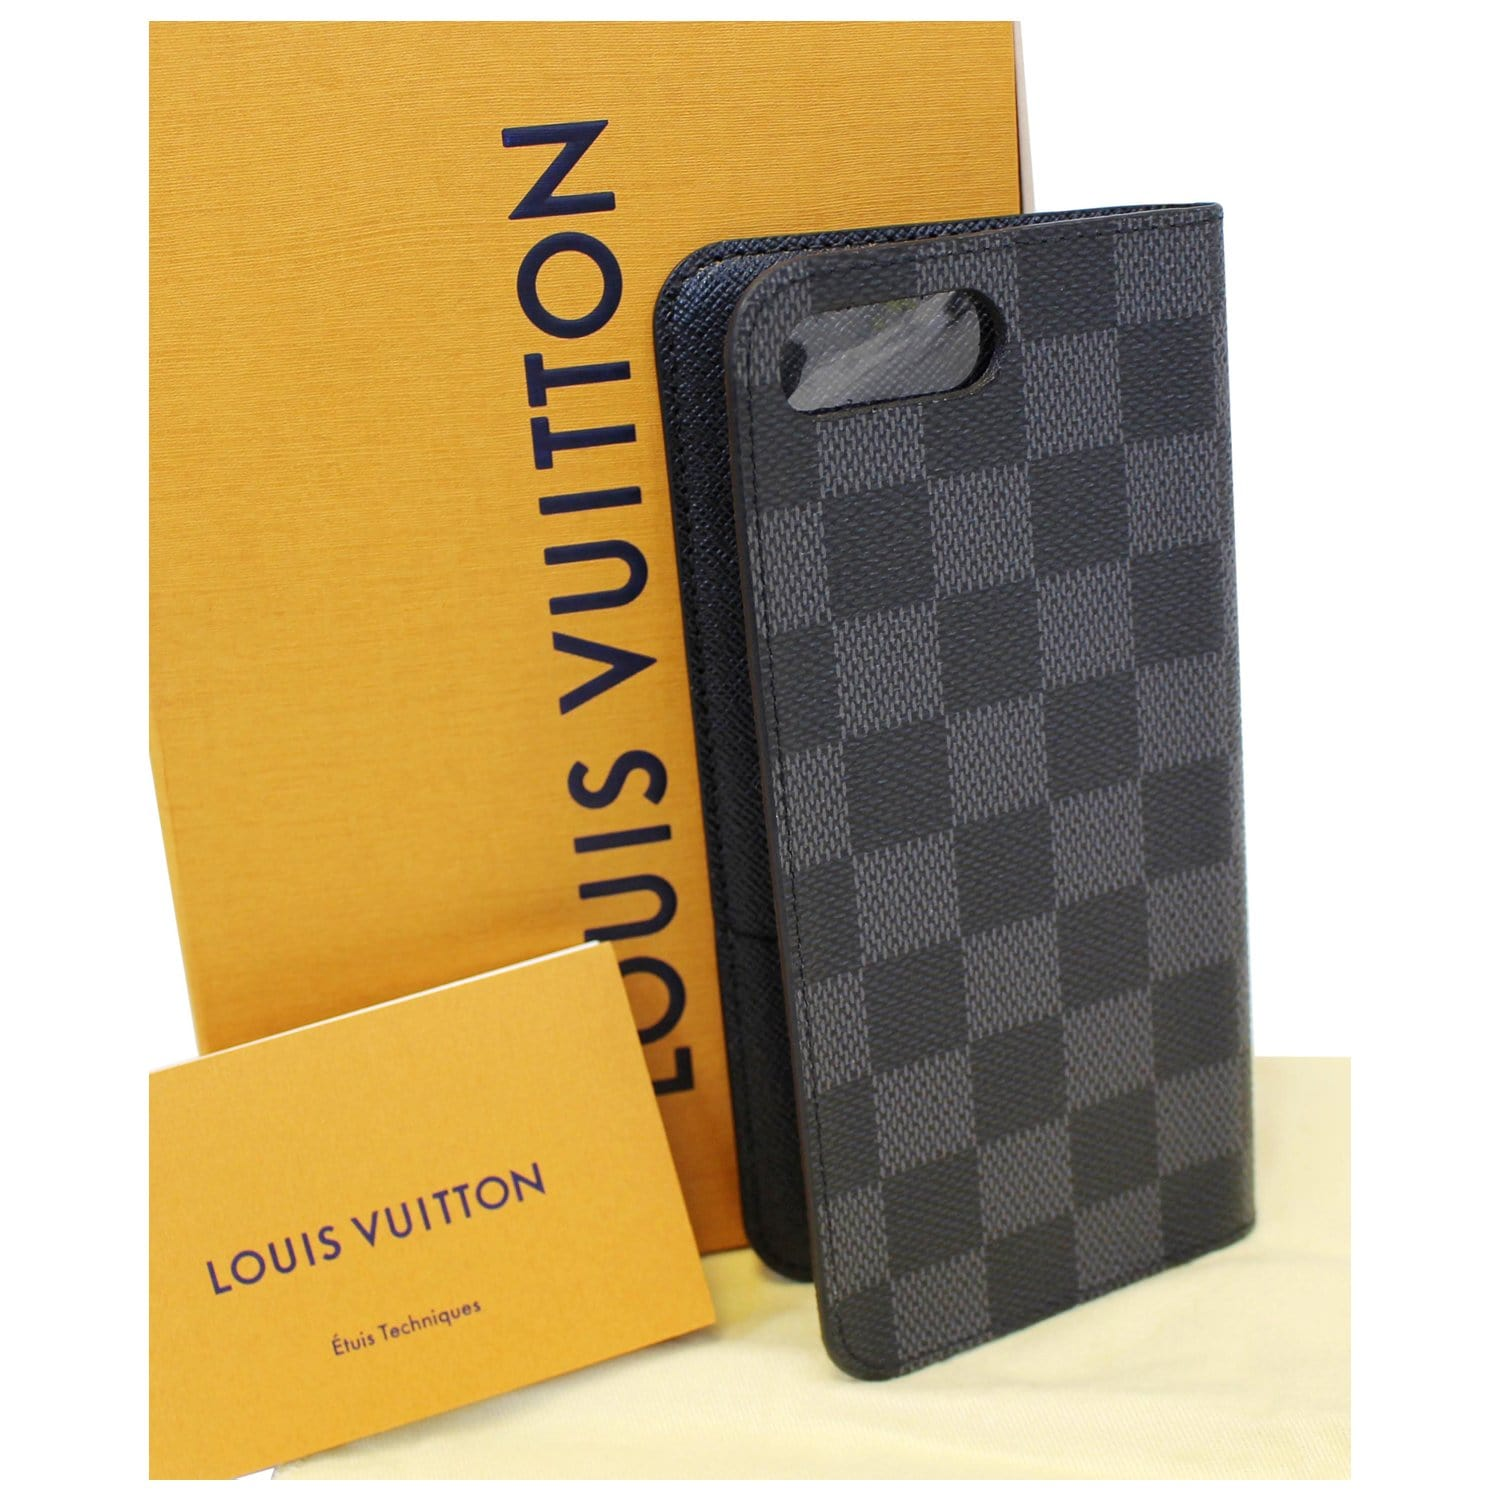 timeless design c4fcd ca765 LOUIS VUITTON IPhone 7 Plus Folio Damier Graphite Phone Case-US